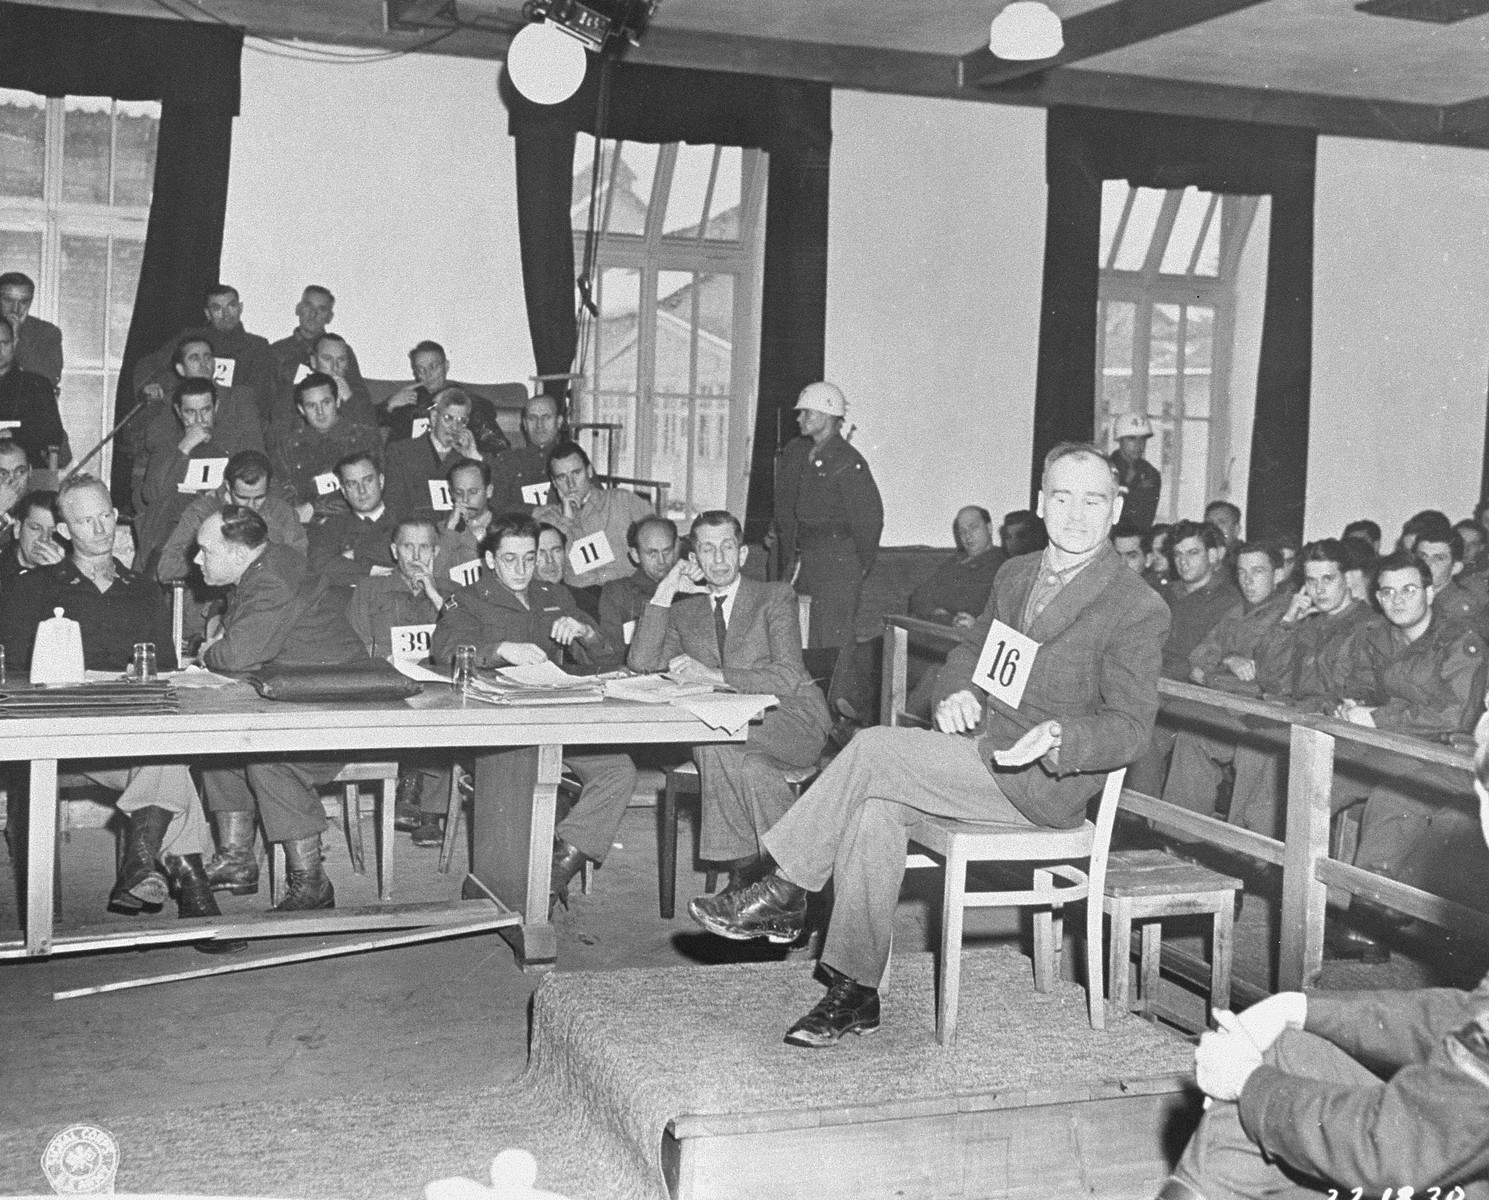 Defendant Christof Ludwig Knoll, a former political prisoner and block leader, testifies at the trial of former camp personnel and prisoners from Dachau.